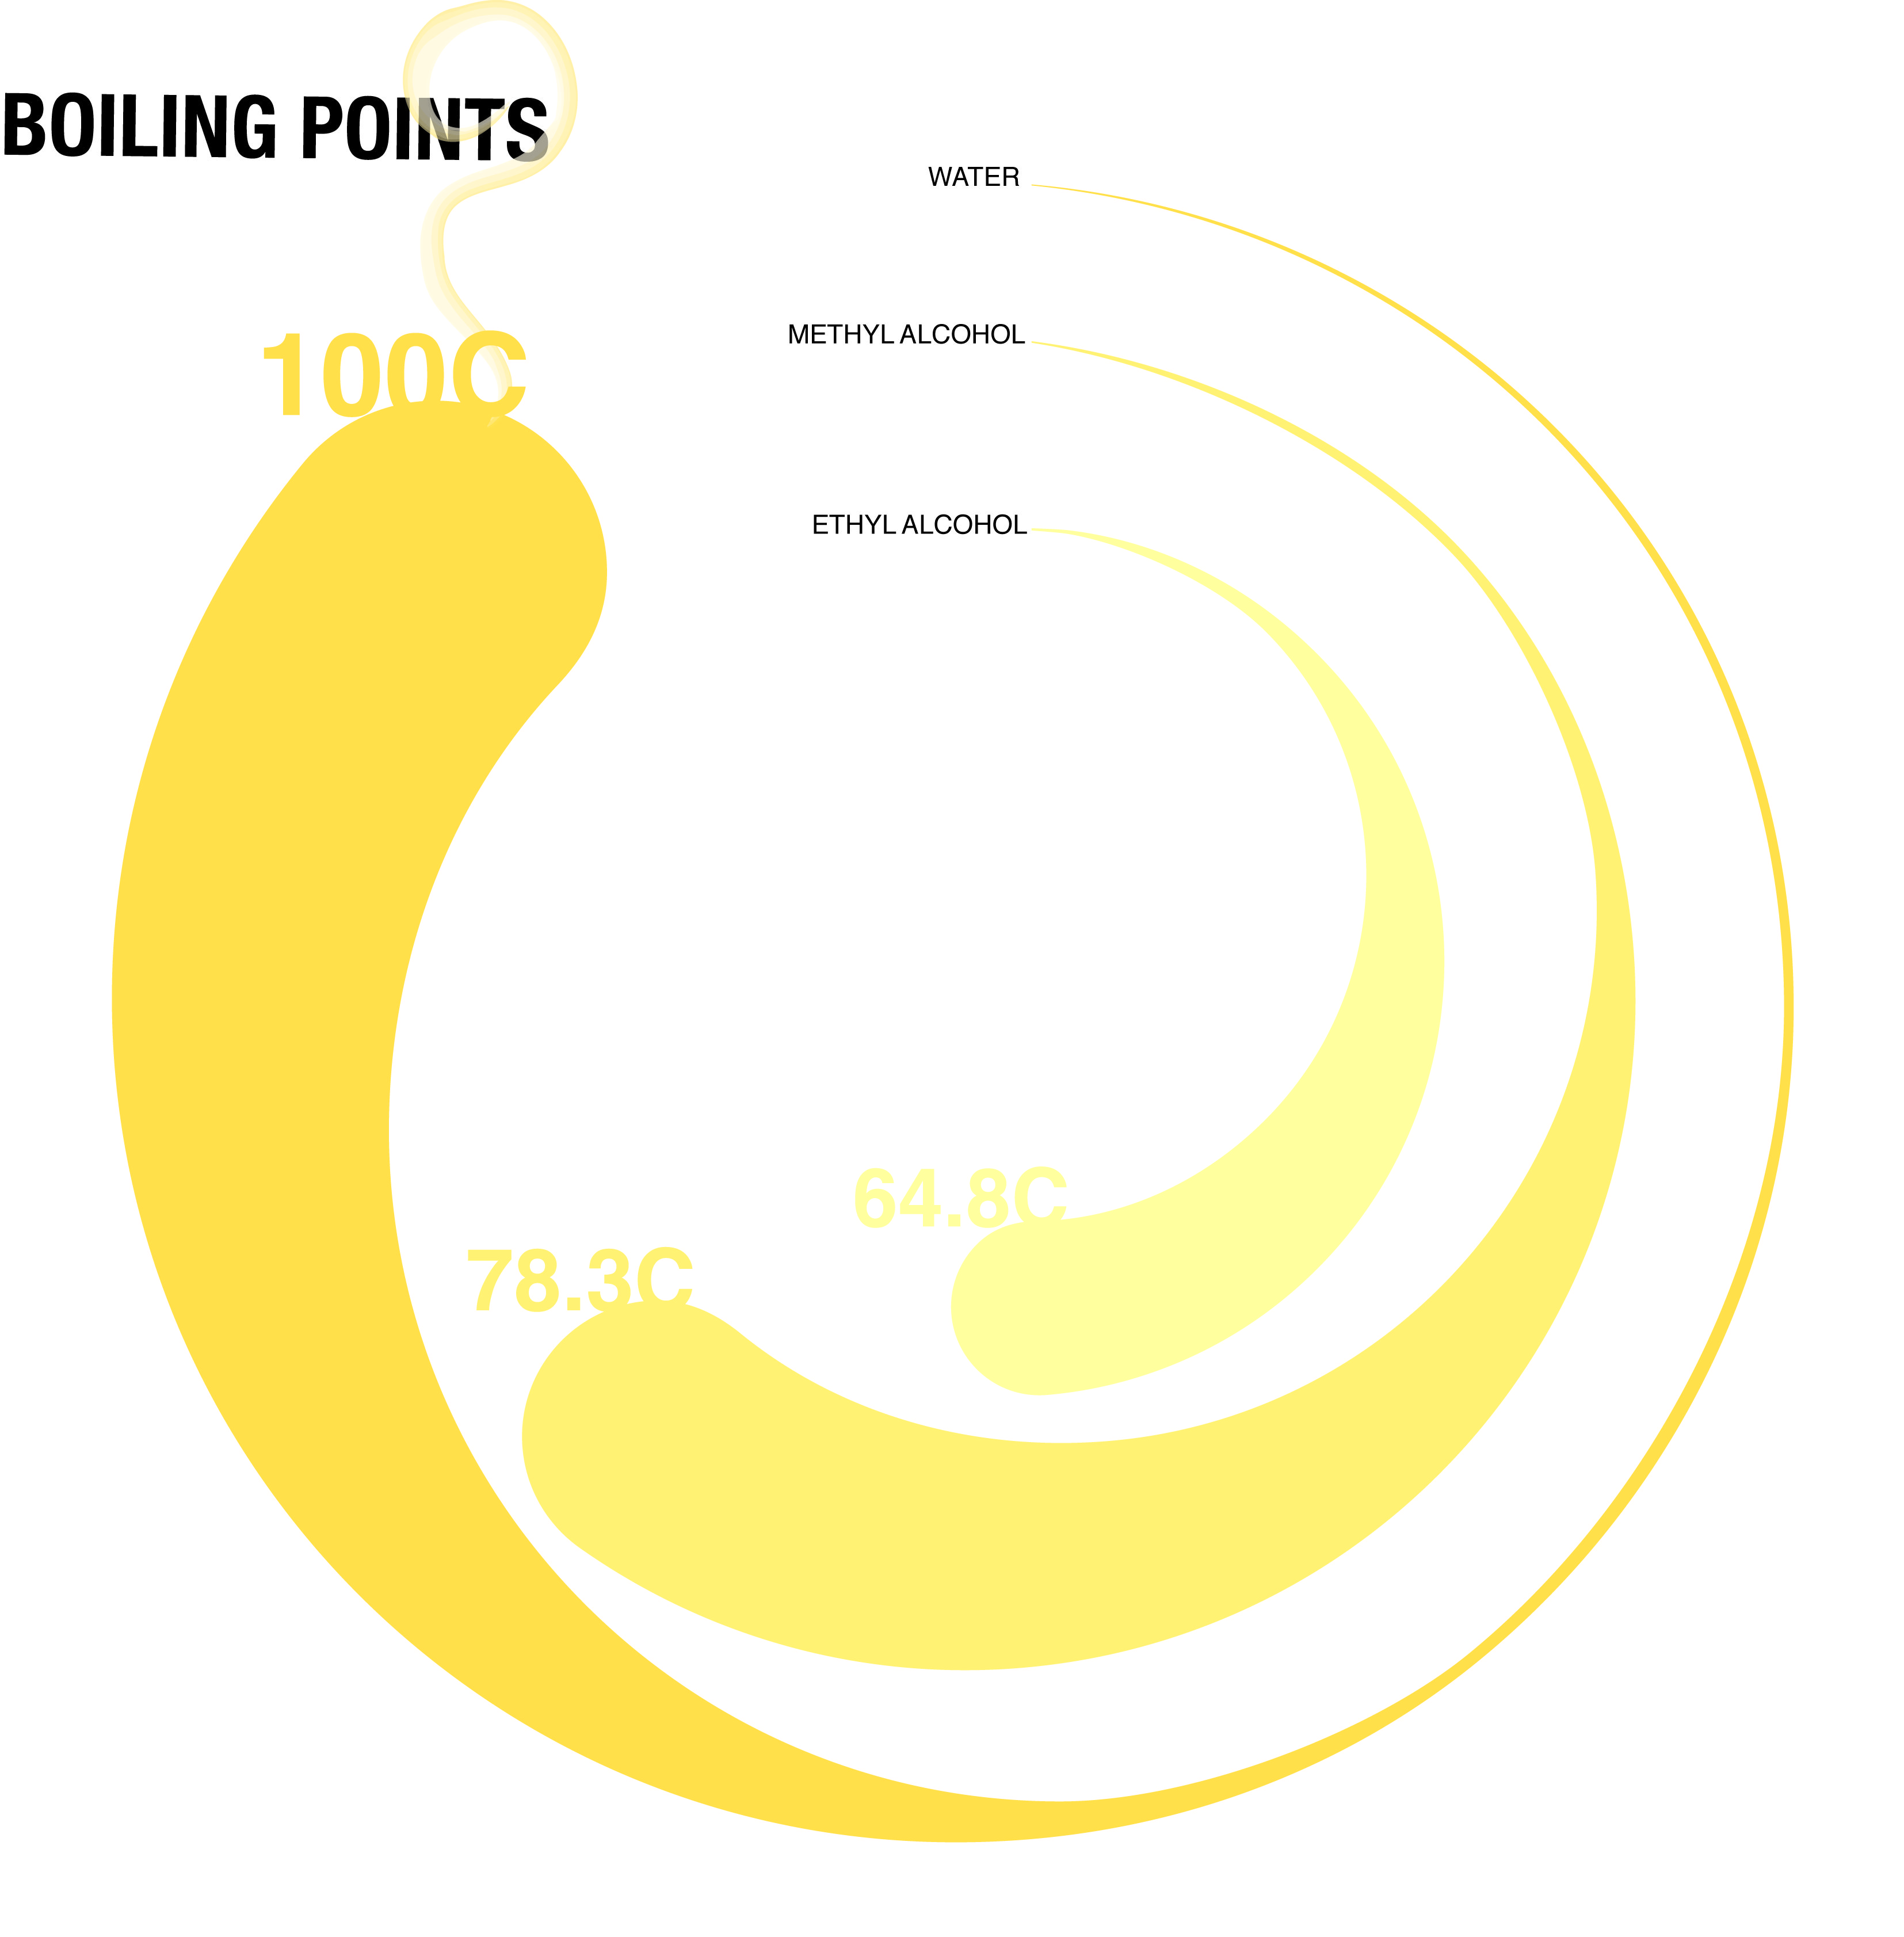 A simple info graphic that illustrates the different boiling points for various substances.